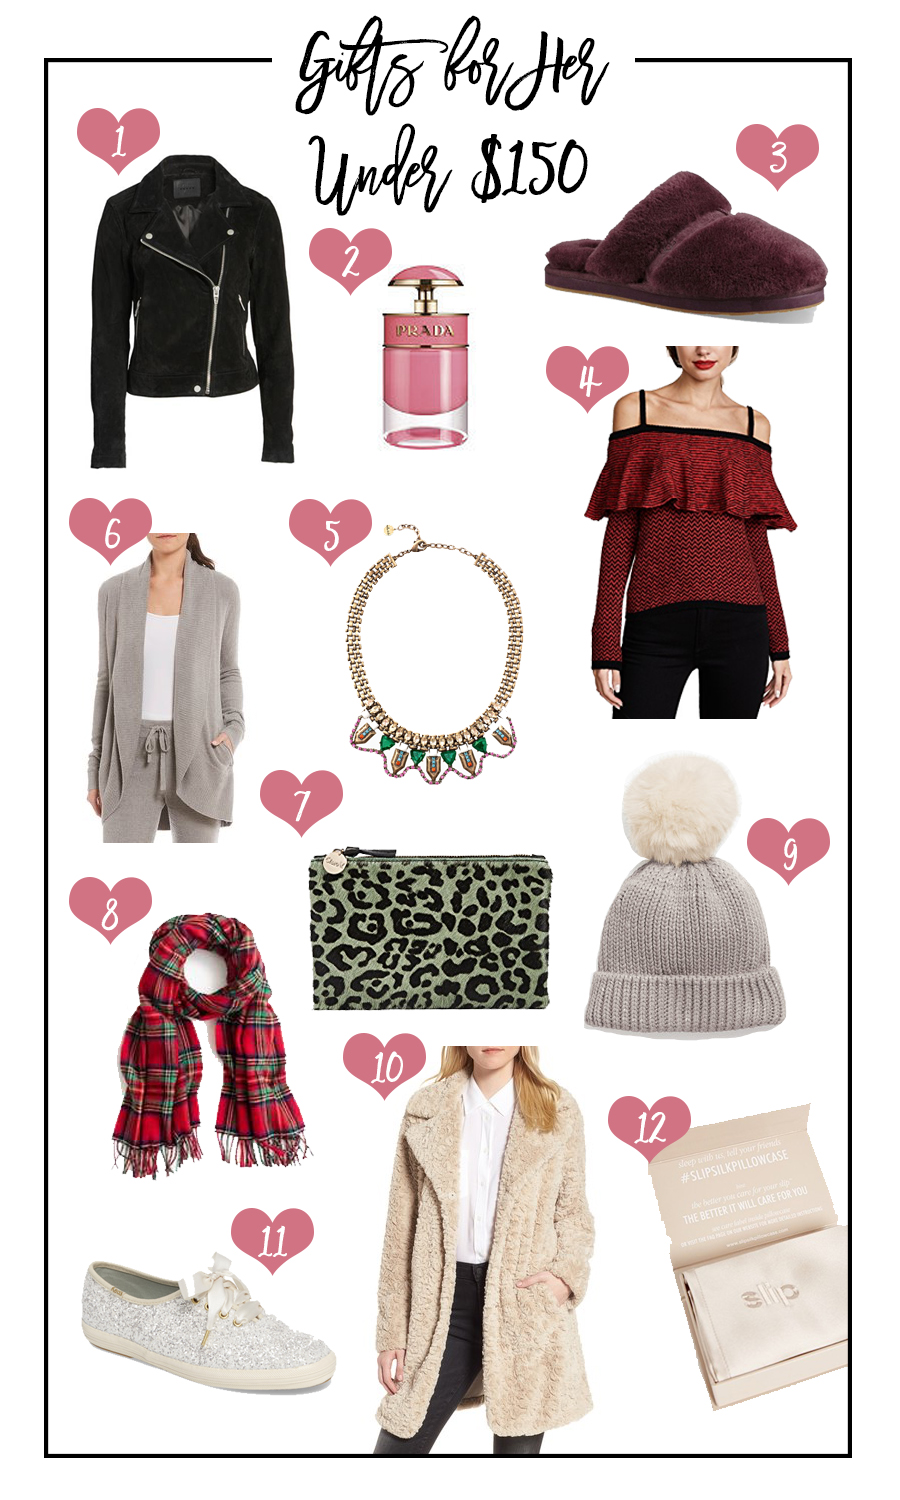 Best Christmas Gifts for Women Under $150, Holiday Gift Guide for Her, Gifts Under $150 for Her, Fashionable Gifts